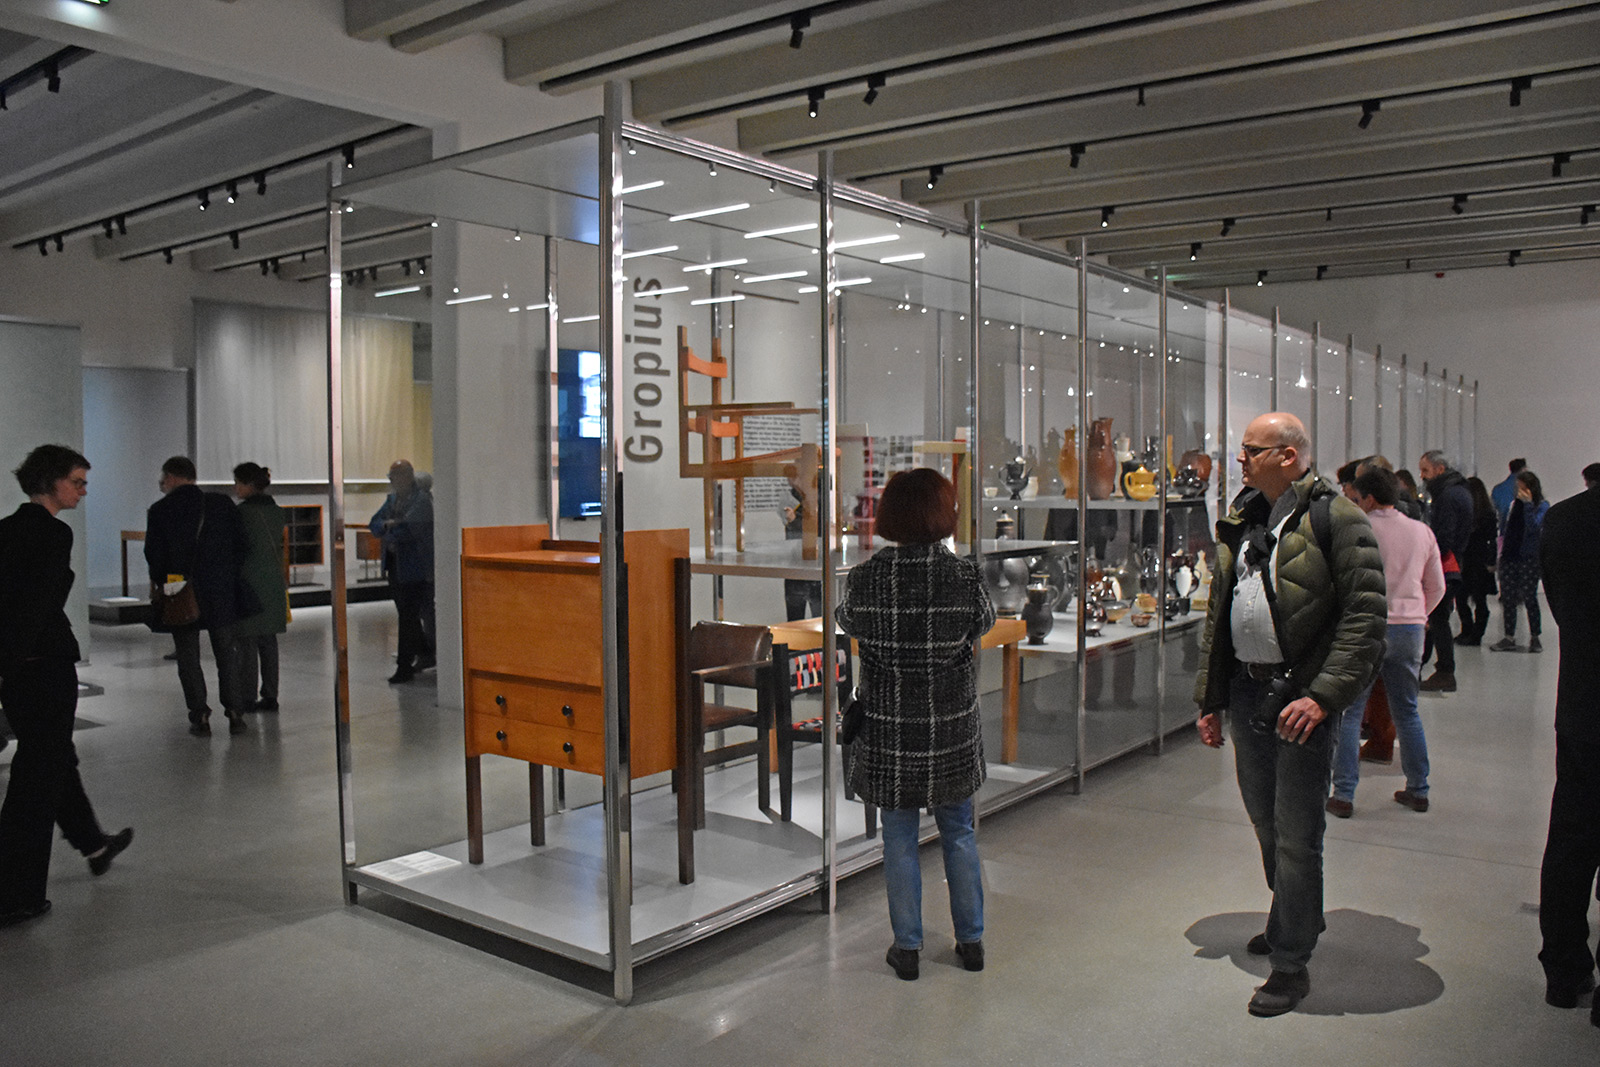 A large room with floor to ceiling glass cases in the middle, containing wooden furniture and vases. People in jackets walk around in front of and behind the cases.